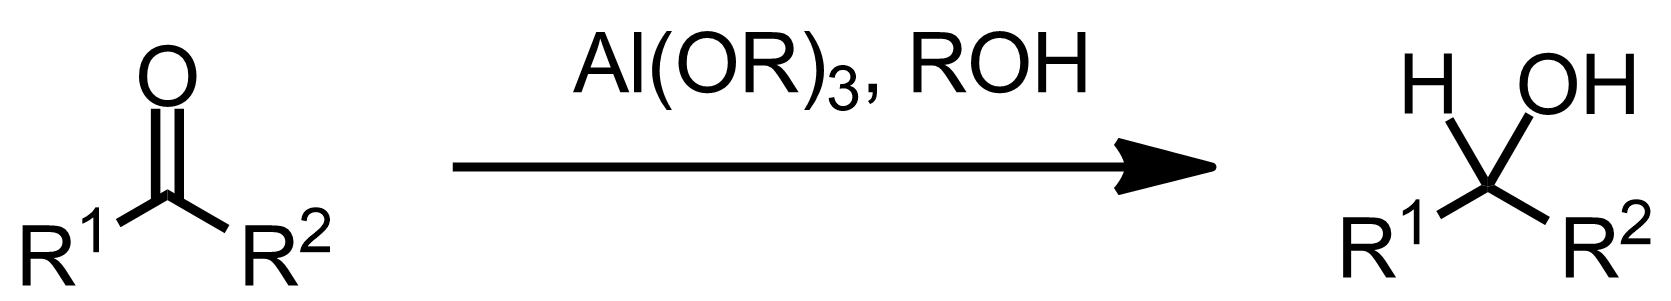 Schematic representation of the Meerwein-Ponndorf-Verley Reduction.